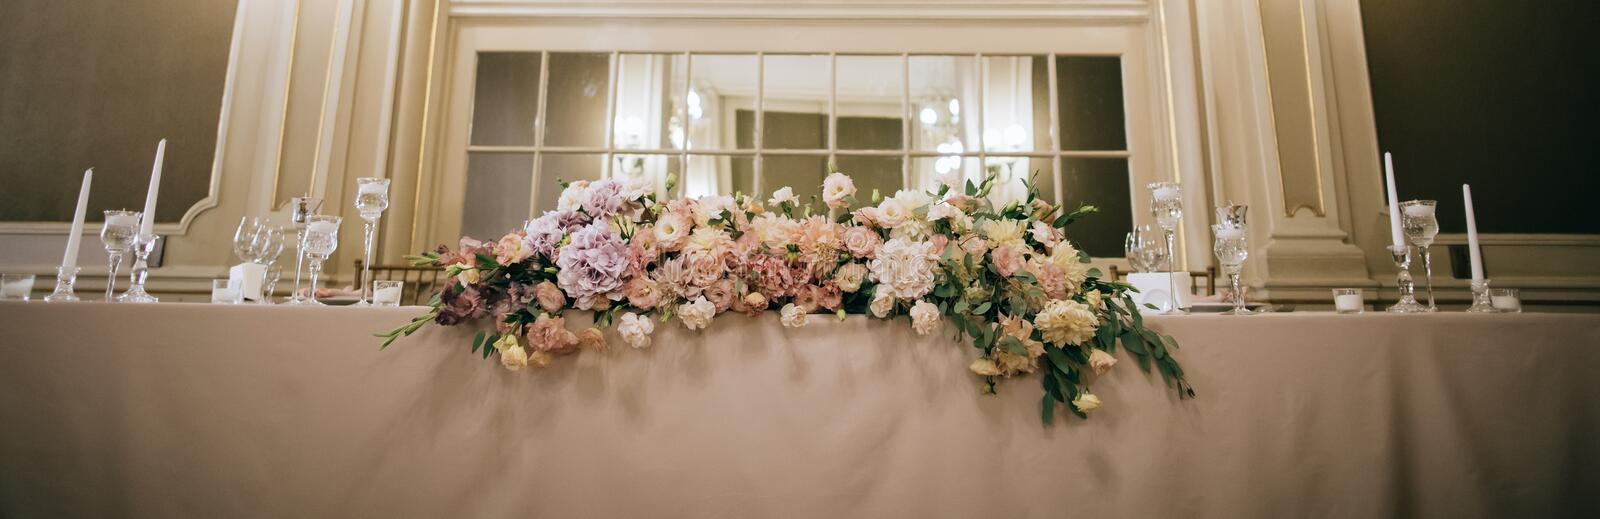 Wedding decor. Fresh bouquets of flowers on the table of the bride and groom at the restaurant.  royalty free stock photo